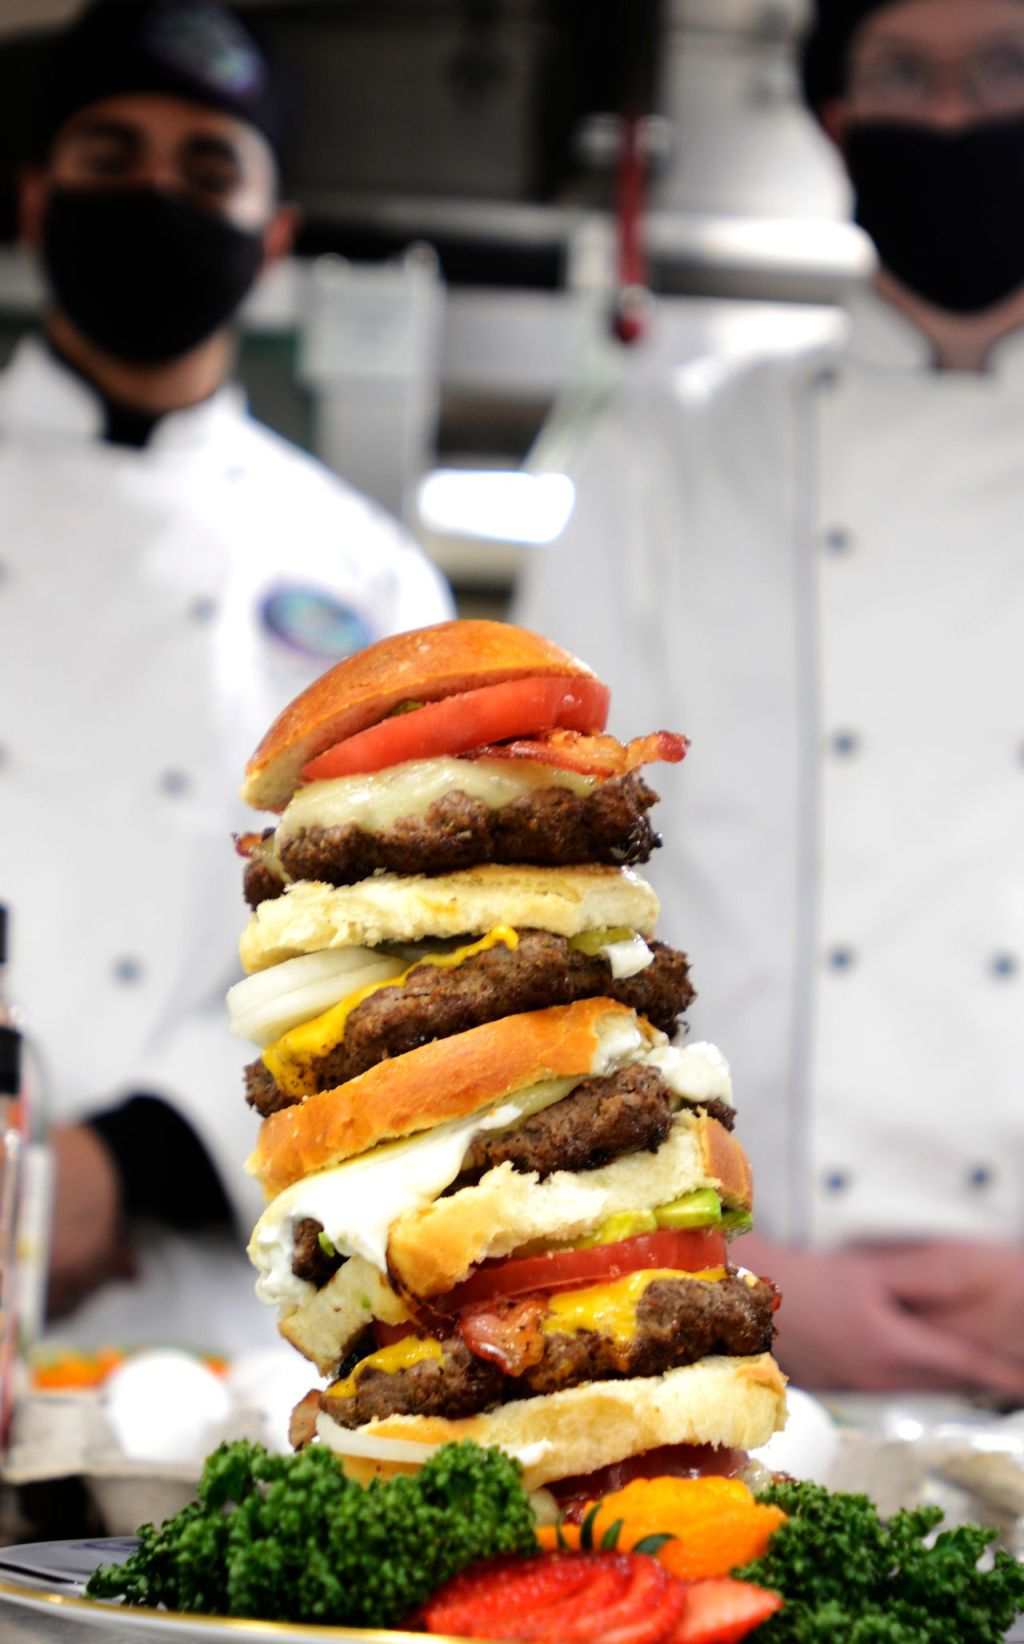 The U.S. Navy's Not-So-Secret Recipe for 'Ronnie Burgers'